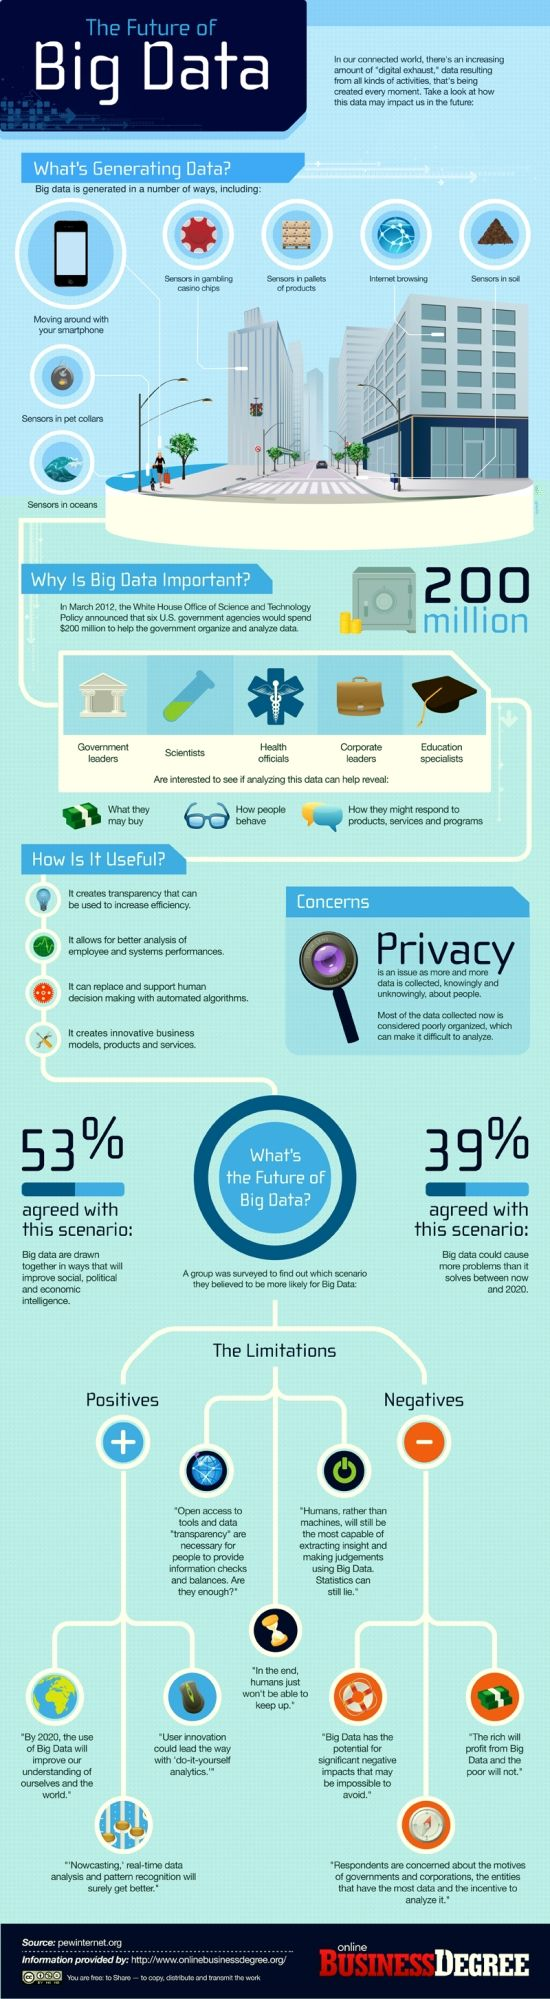 The Future of Big Data. From http://www.tnooz.com/2012/12/14/news/big-data-where-its-coming-from-where-its-headed-infographic/#AtFBO5Jw03t4IPqB.99